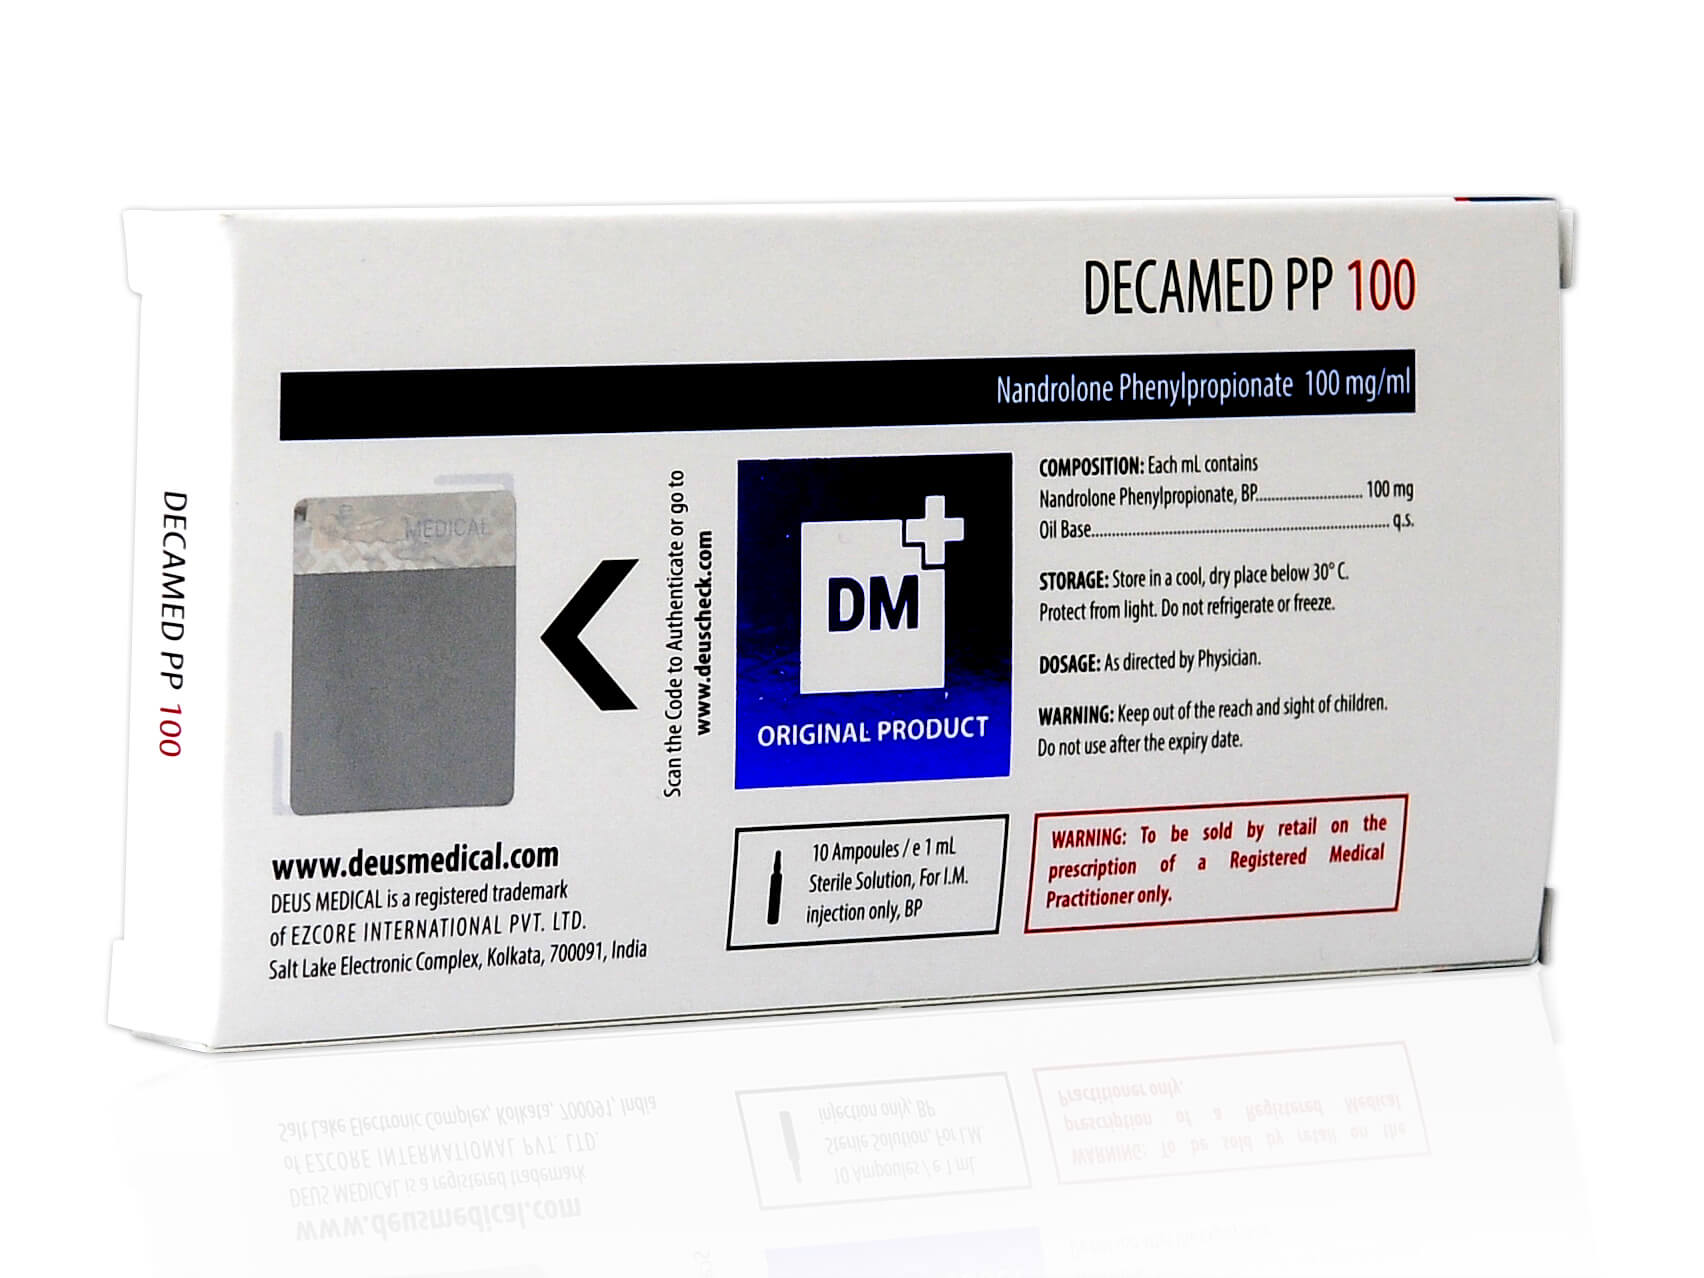 DECAMED PP 100 (Nandrolone Phenylpropionate) - 10amps of